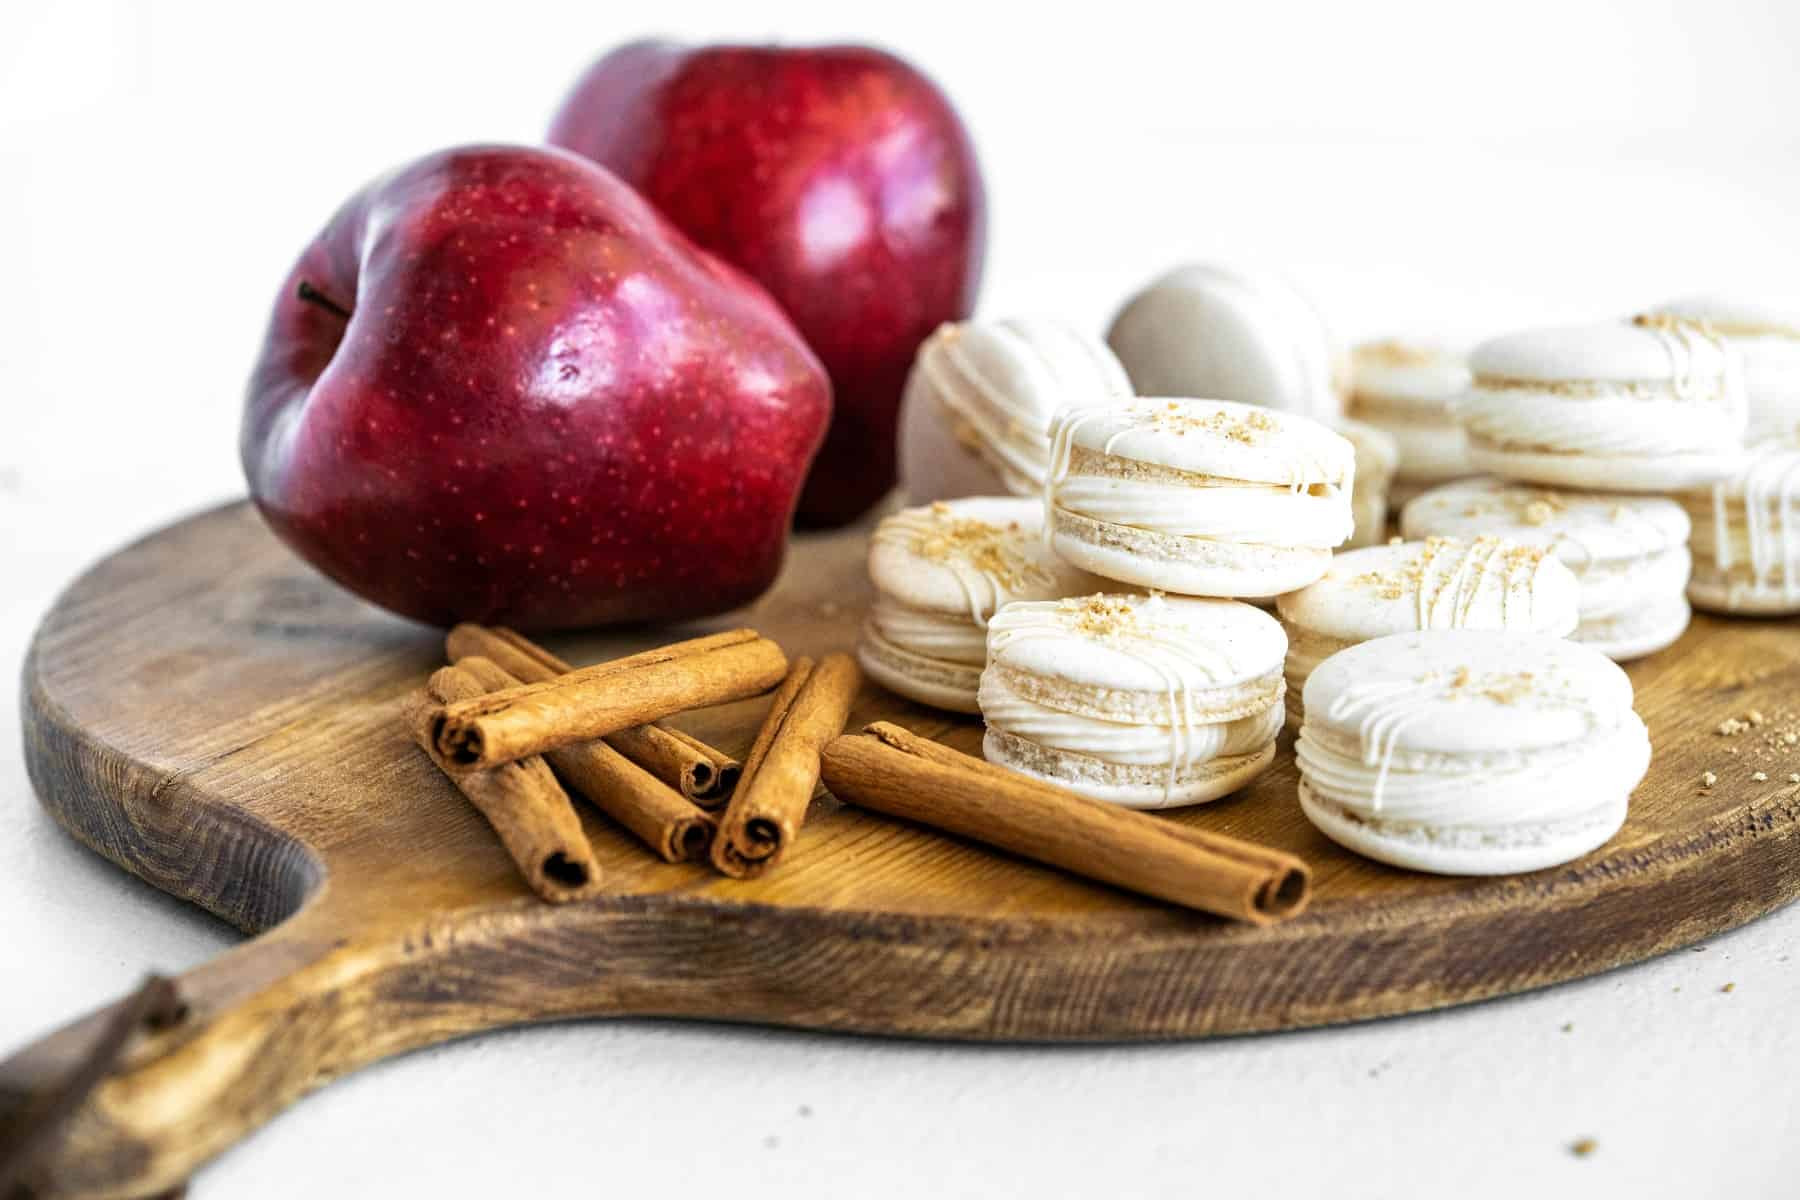 Macarons with apples and cinnamon sticks on a wooden board